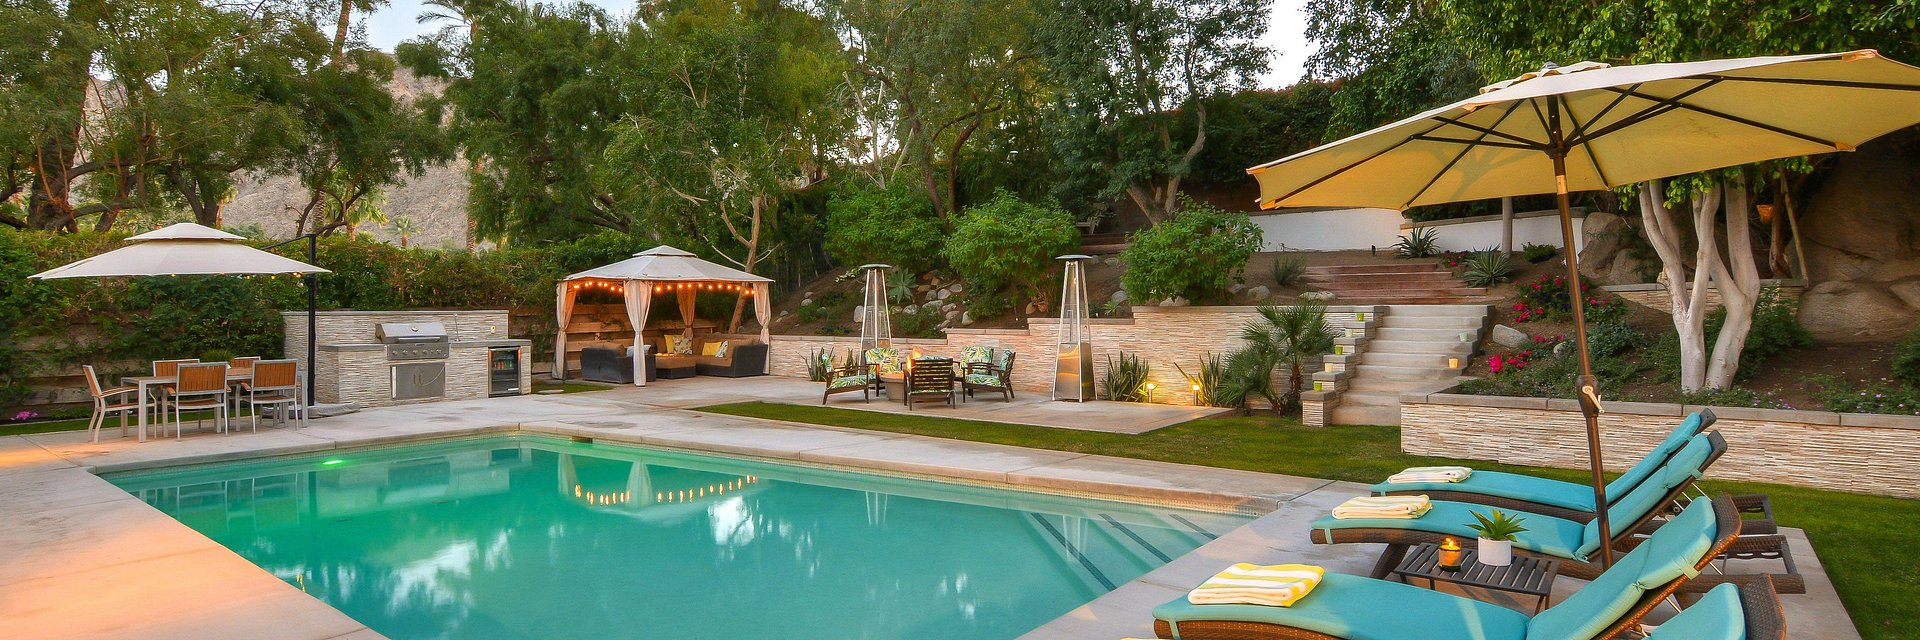 Coldwell Banker Residential Brokerage Lists Indian Wells Mid- Century Modern Property for $939,000